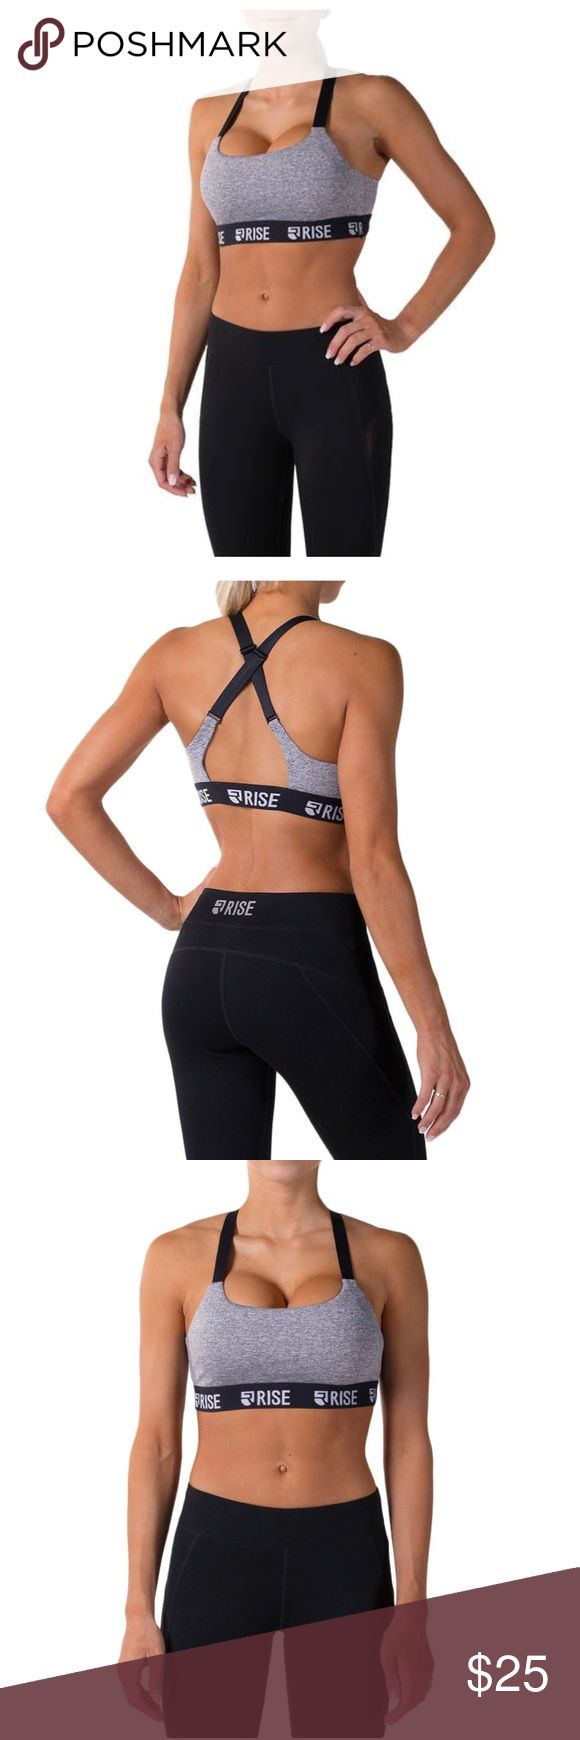 Motion Sports Bra by Rise With an adjustable, crossed strap design, we would classify this as medium, to high support. Perfect for looking trendy with confidence during midday jogs.  Note: all pads on our sports bras are removable for easy cleaning.  Fabric: The White/Grey, Black/Black versions of this garment are 90% polyester, 10% spandex.  The Grey/Mint, Grey/Black versions of this garment are 60% cotton, 35% polyamide, 5% spandex. Fabletics Intimates & Sleepwear Bras